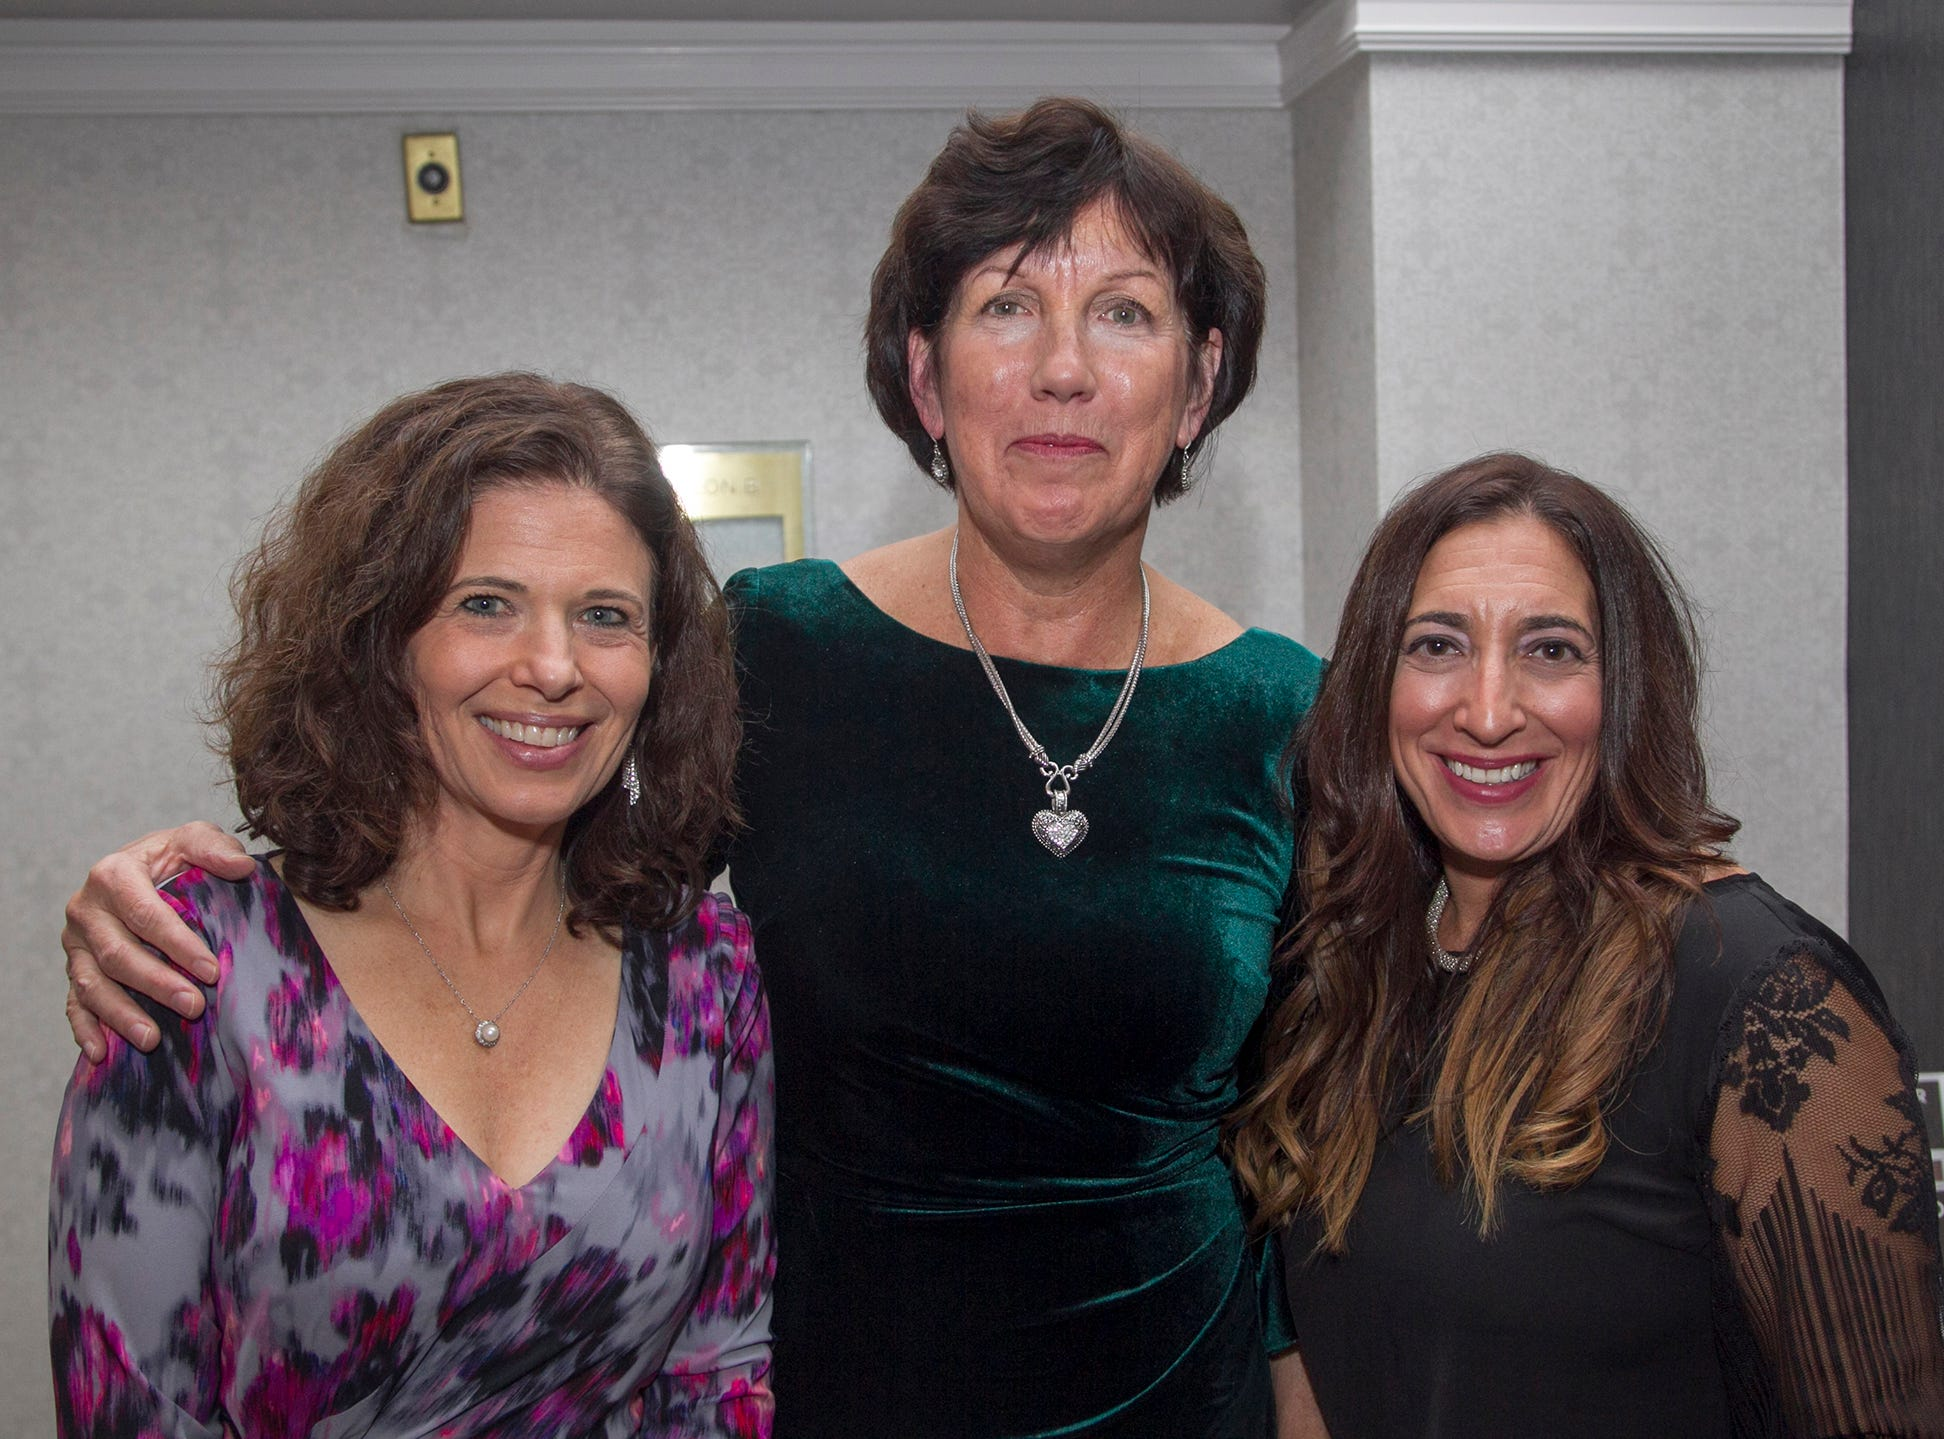 Laura Rosen, Karen Overgaard, Faith Kaufman. Kula for Karma's 11th Anniversary gala at Pearl River Hilton. 11/05/2018